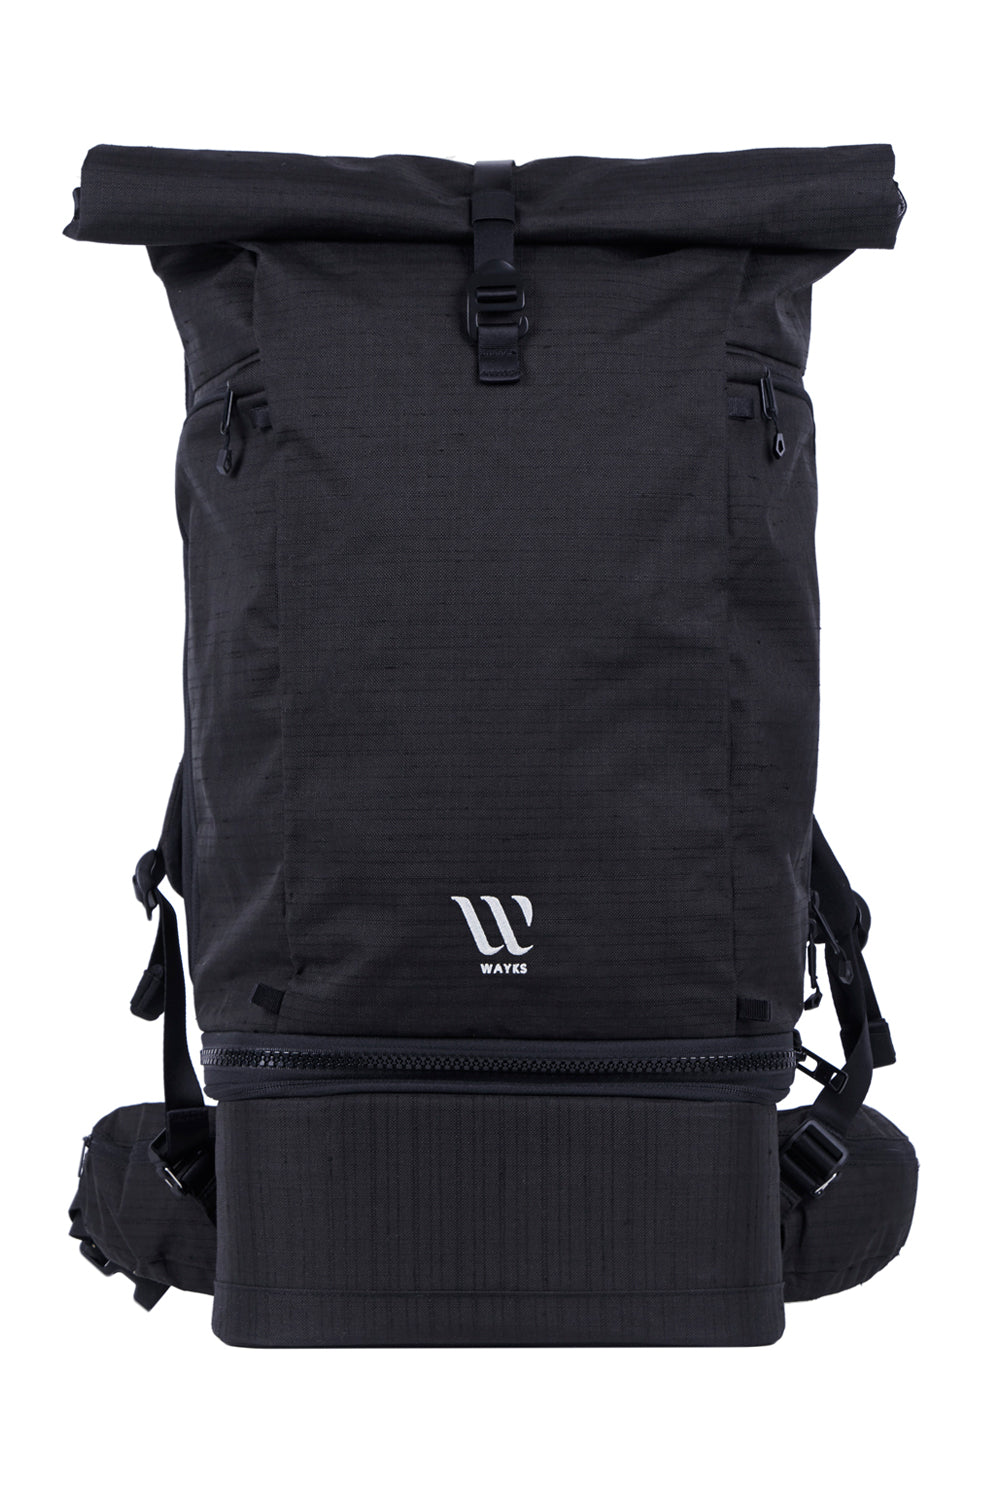 Wayks Travel Backpack Black Back